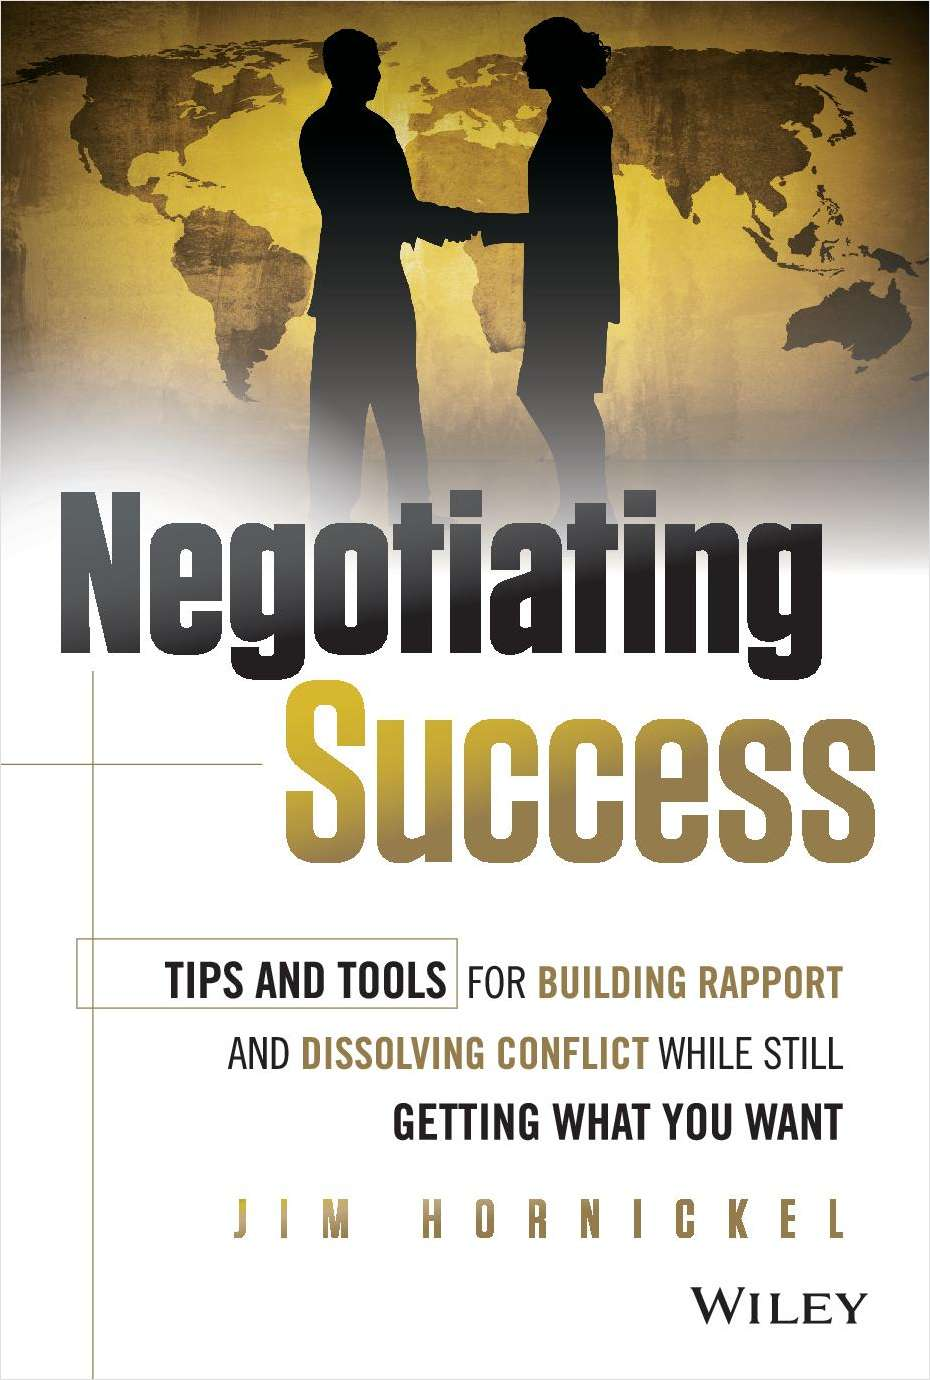 Negotiating Success: Tips and Tools for Building Rapport and Dissolving Conflict While Still Getting What You Want--Free Sample Chapter